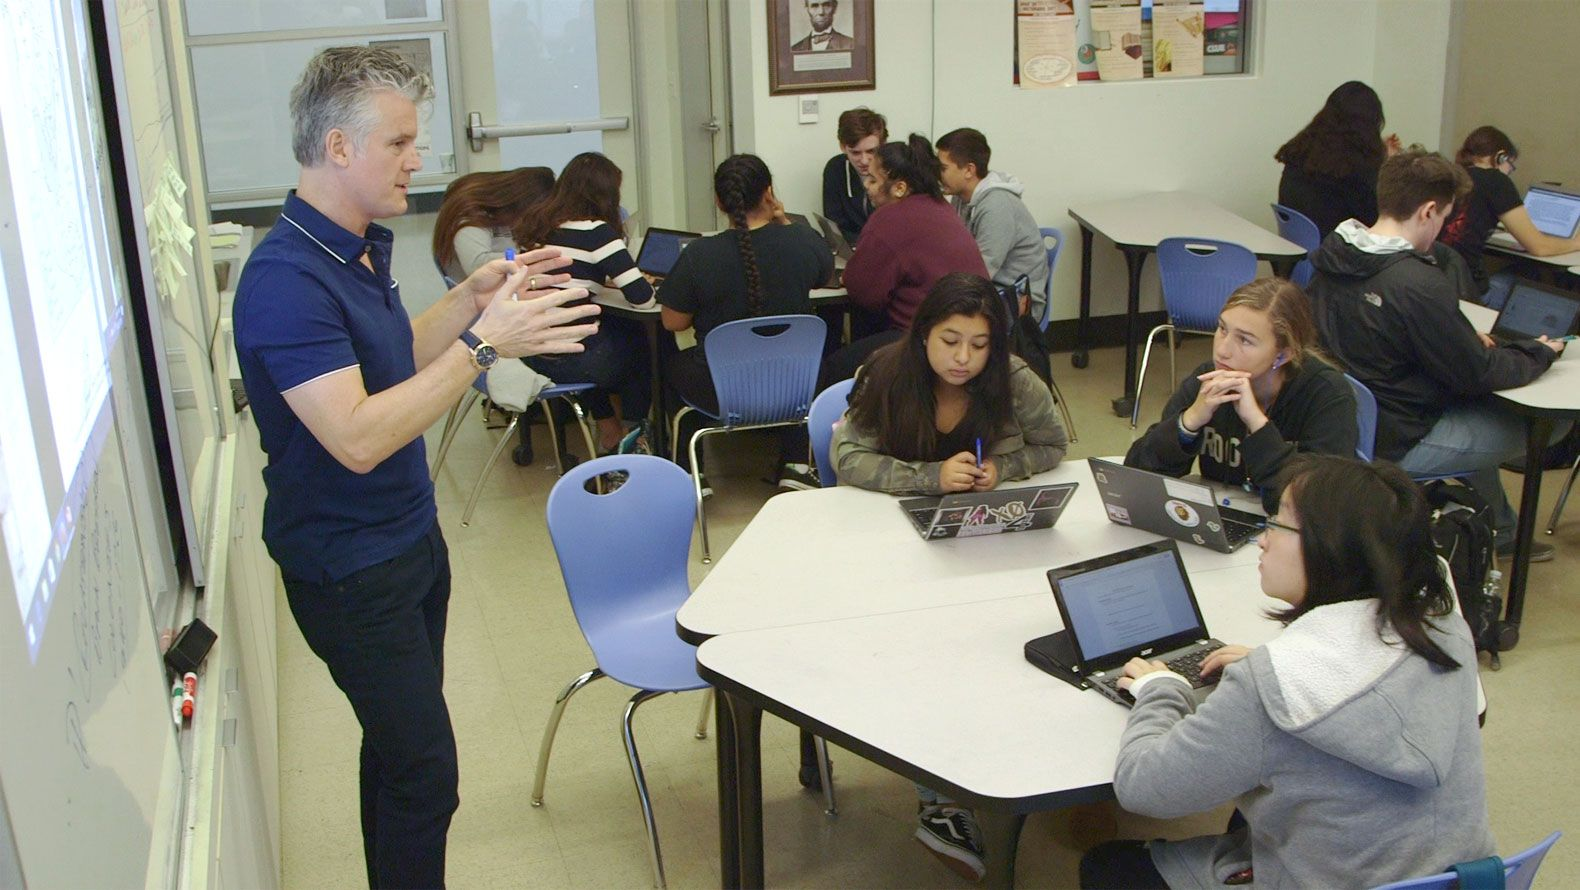 A teacher is standing by a projector talking to three students who are sitting at two small tables pushed together. A group of six students are working together at the side of the room, and three students are working by themselves at the back of the room.